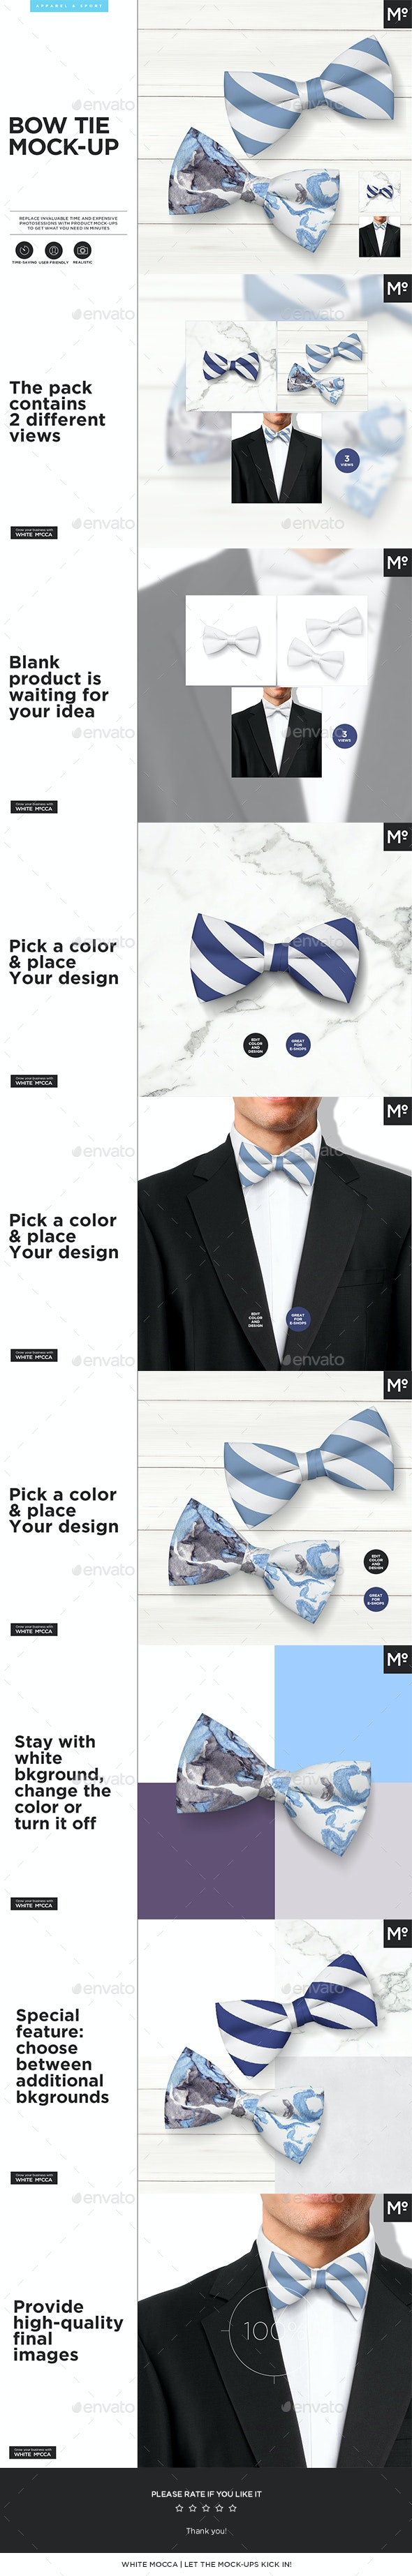 Bow Tie Mock-up - Miscellaneous Apparel